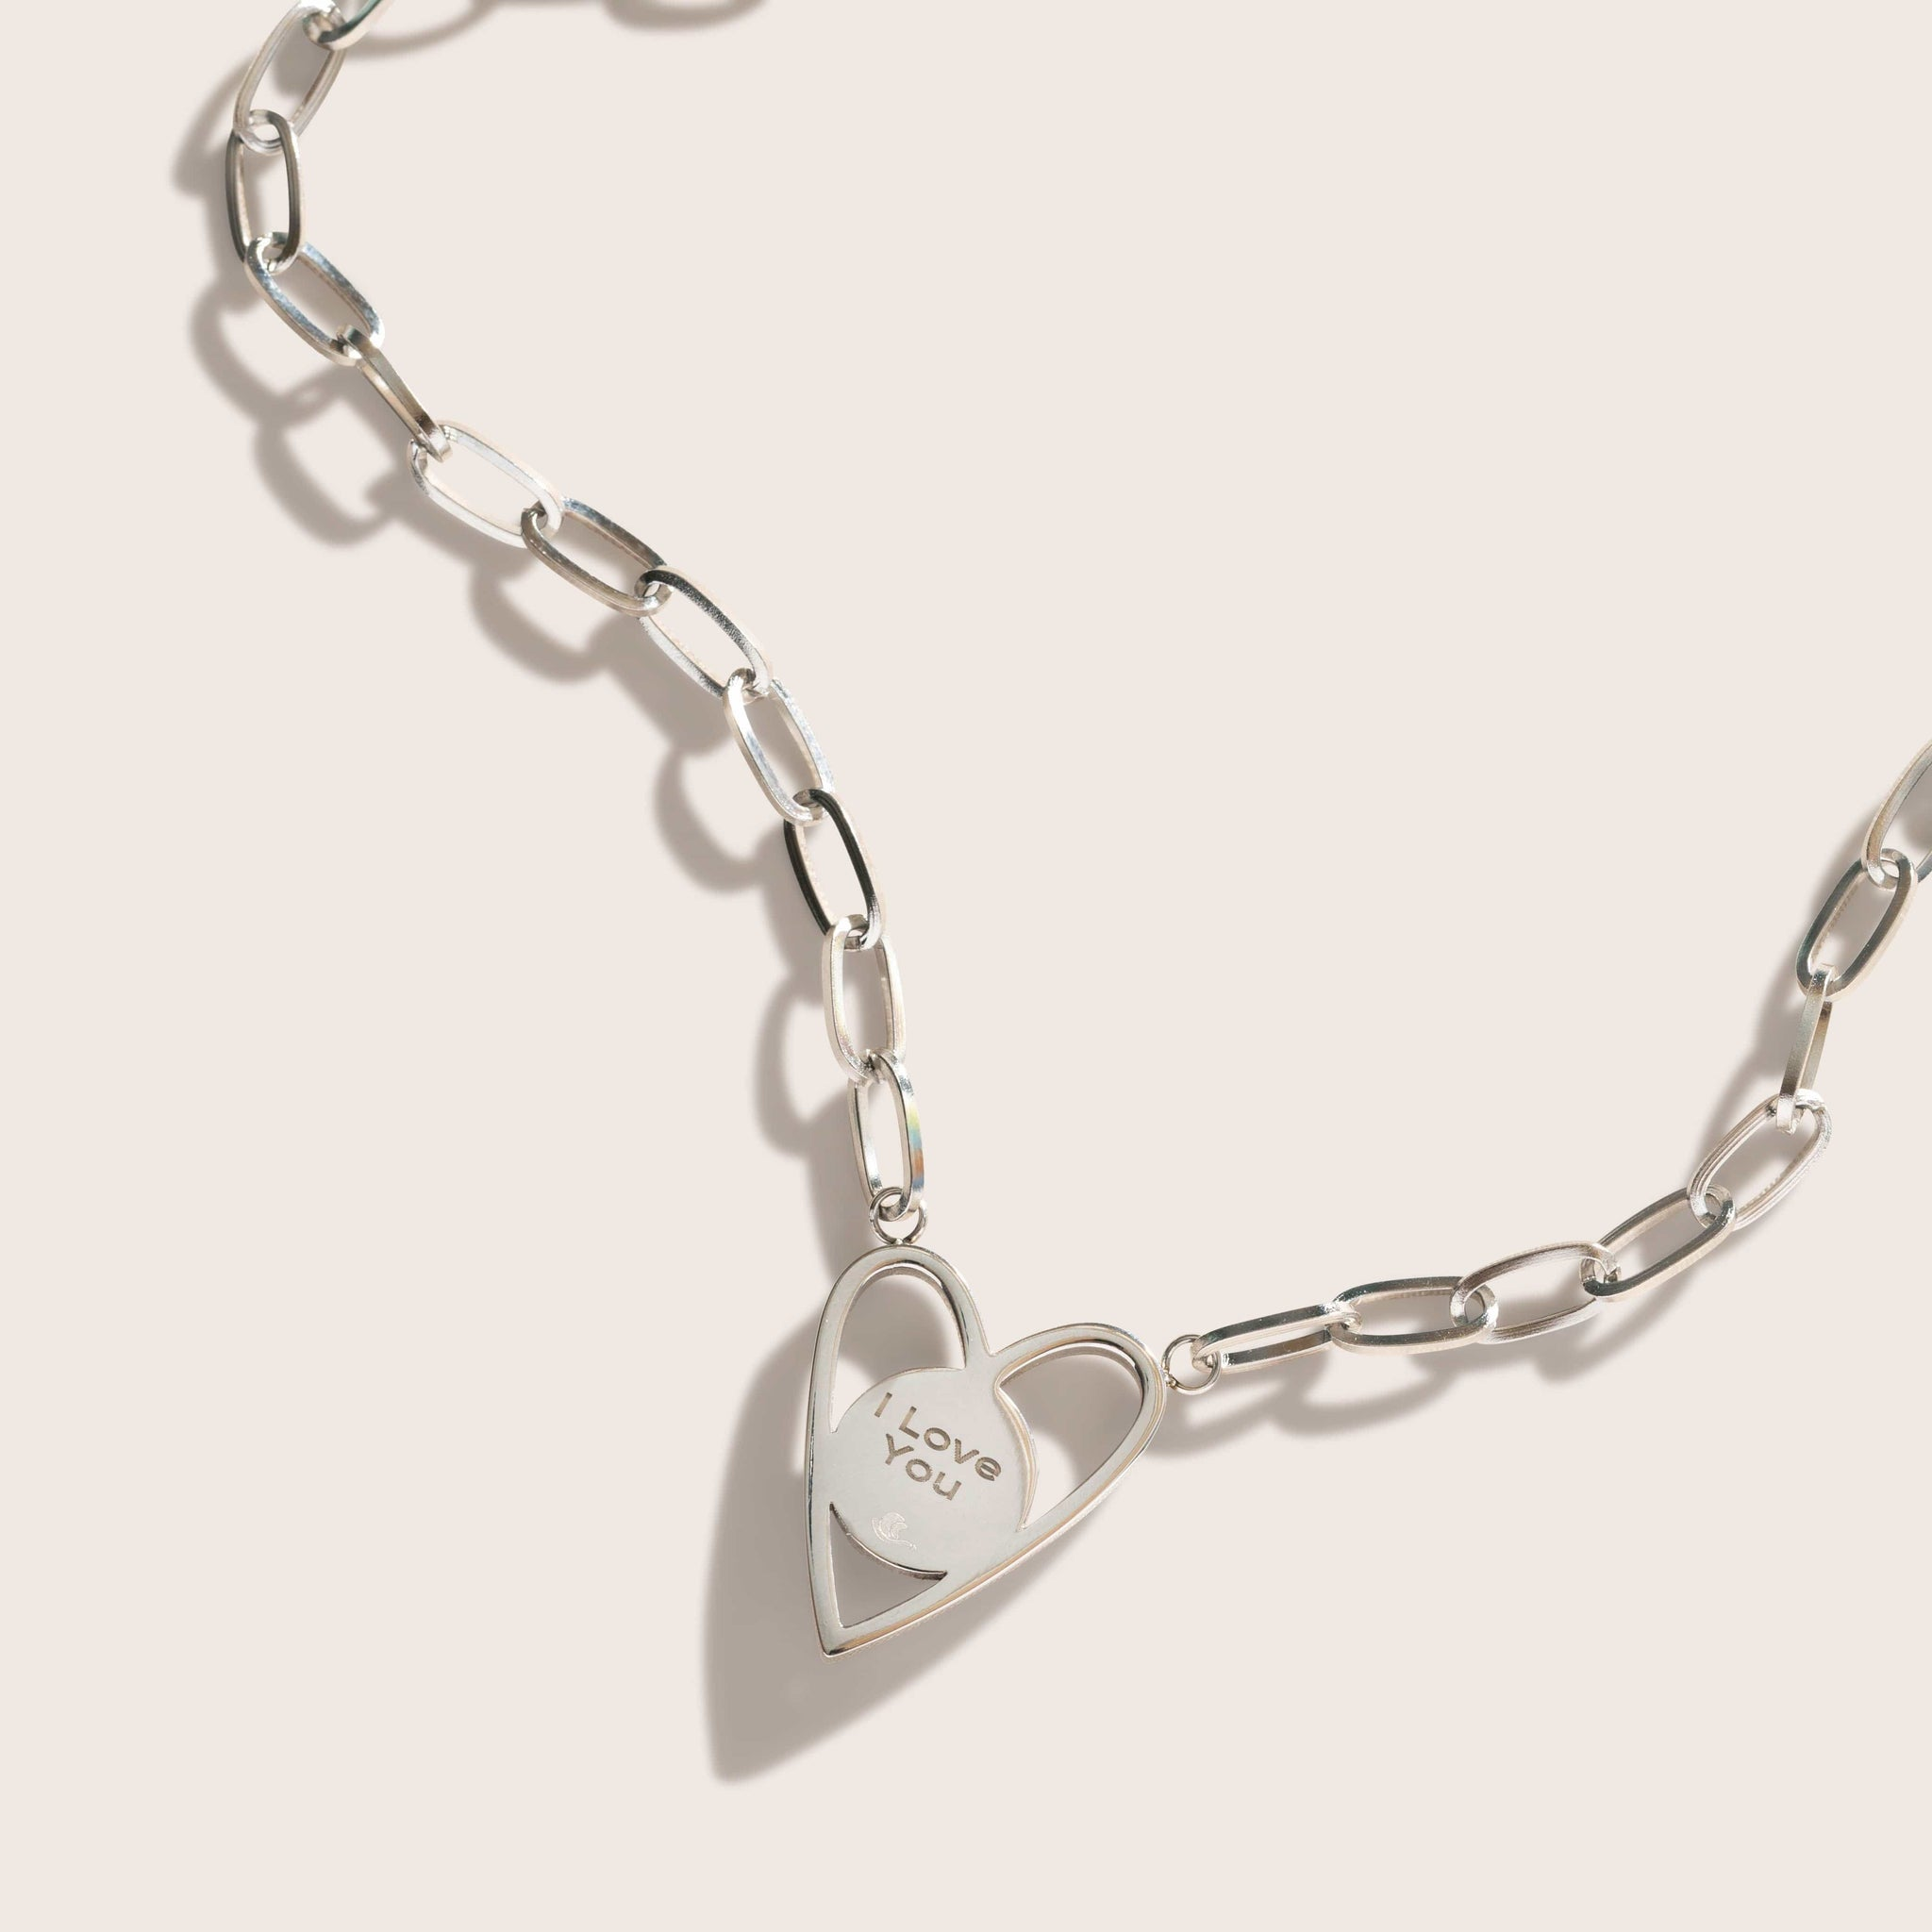 Atlas Link Heart Necklace in Stainless Steel